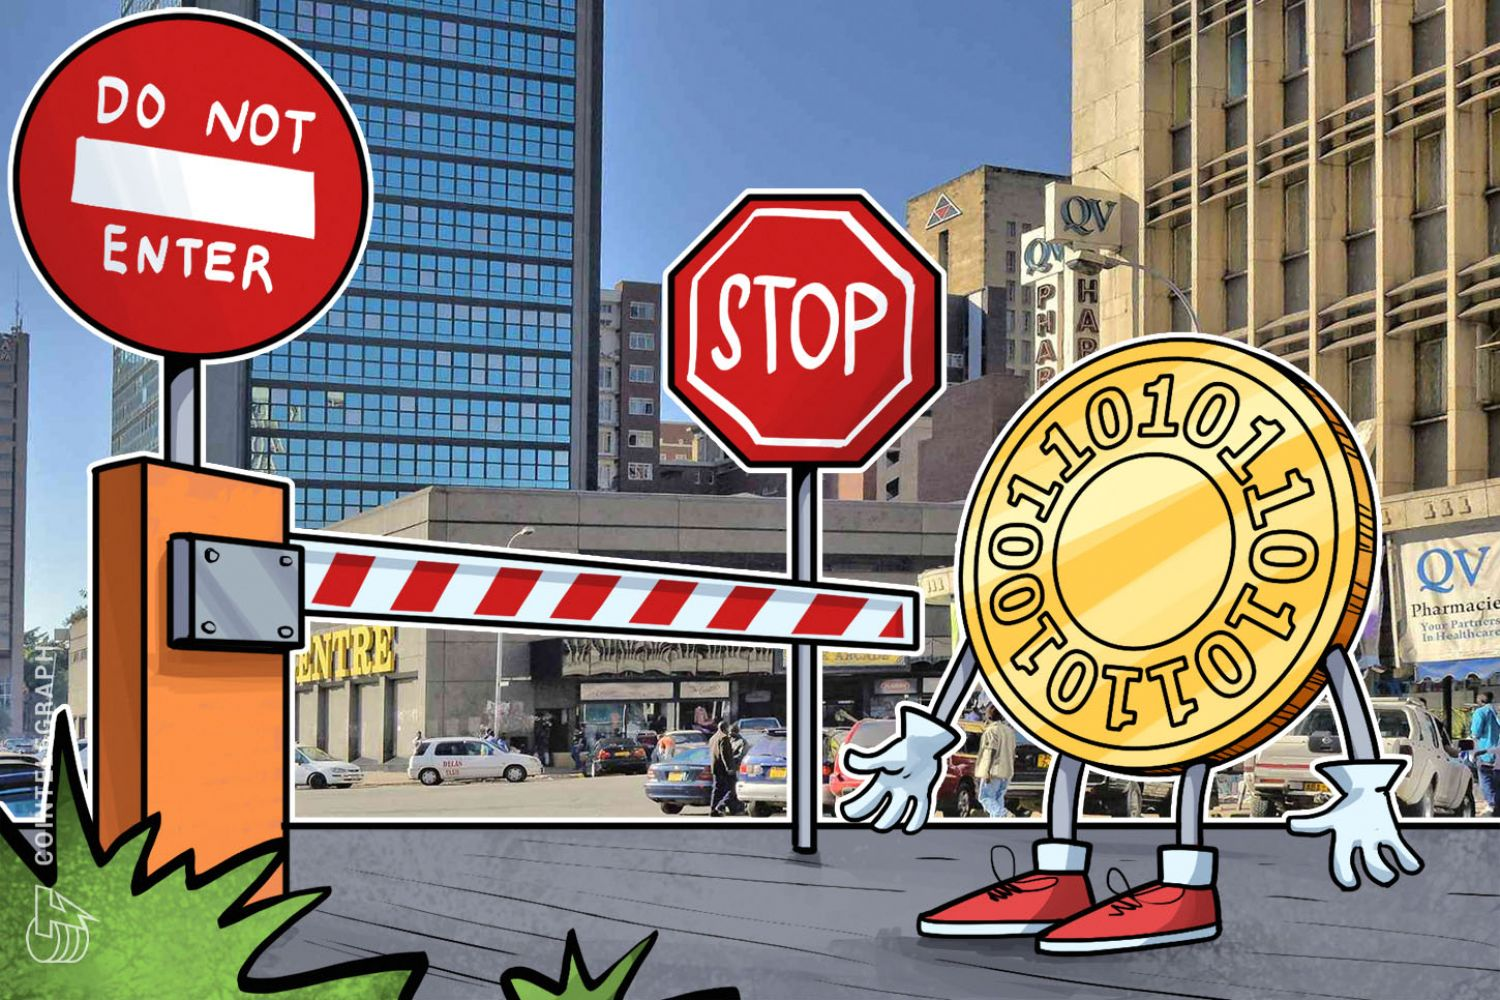 Zimbabwe S Central Bank Has Recently Banned Dometic Financial Insutions From Dealing With Cryptocurrencies Local Media Outlet Newsday Reports Today